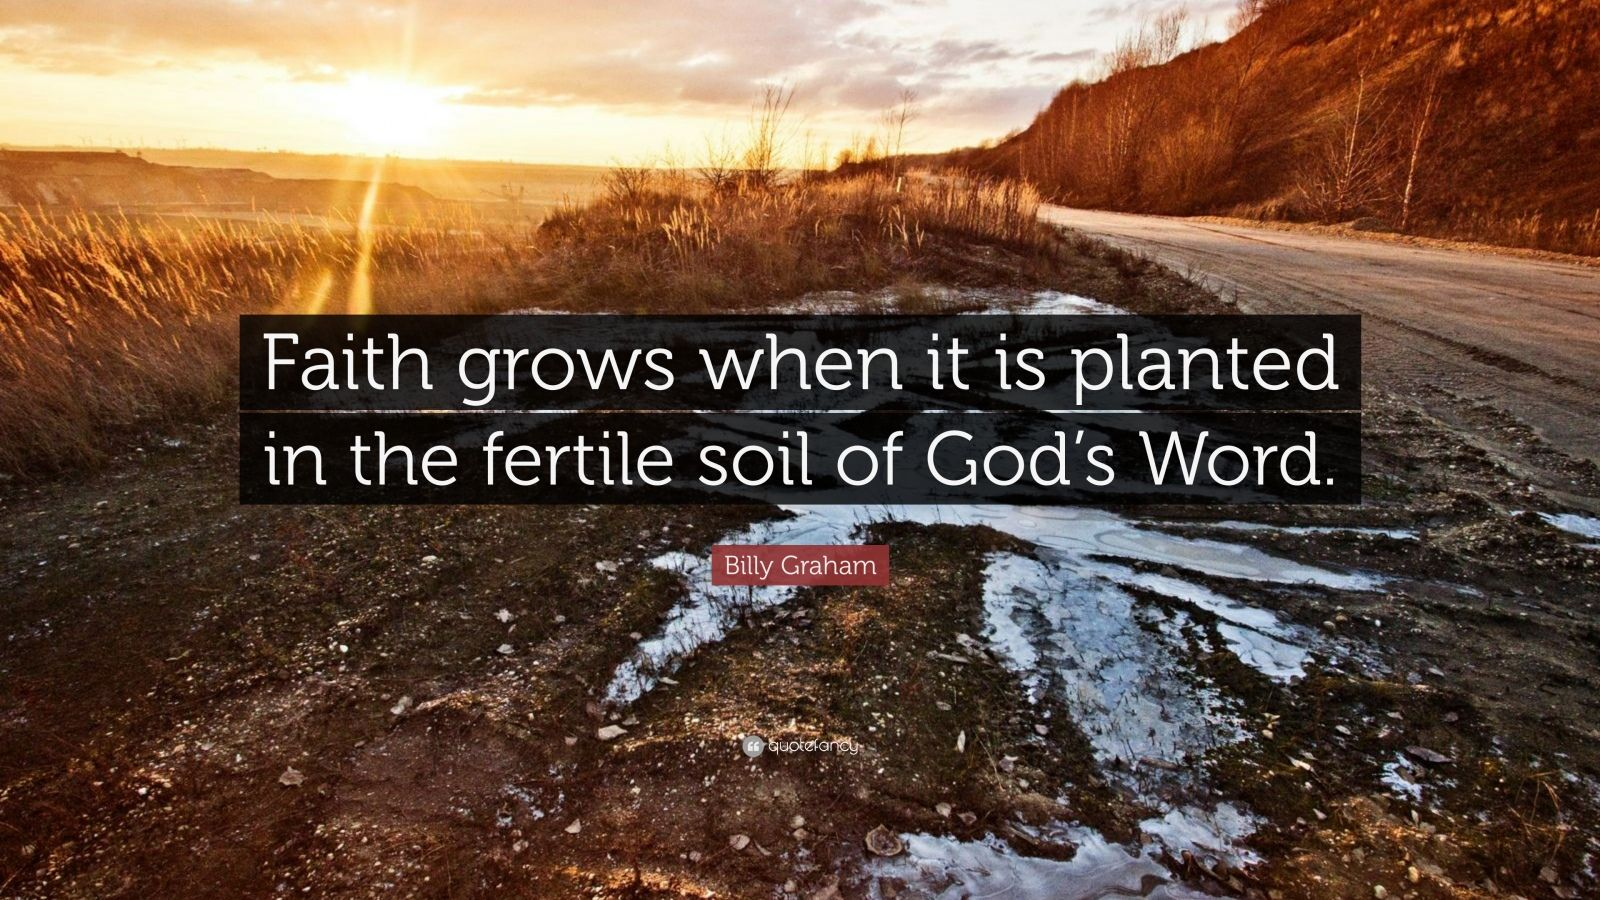 """Billy Graham Quote: """"Faith grows when it is planted in the fertile soil of God's Word."""""""